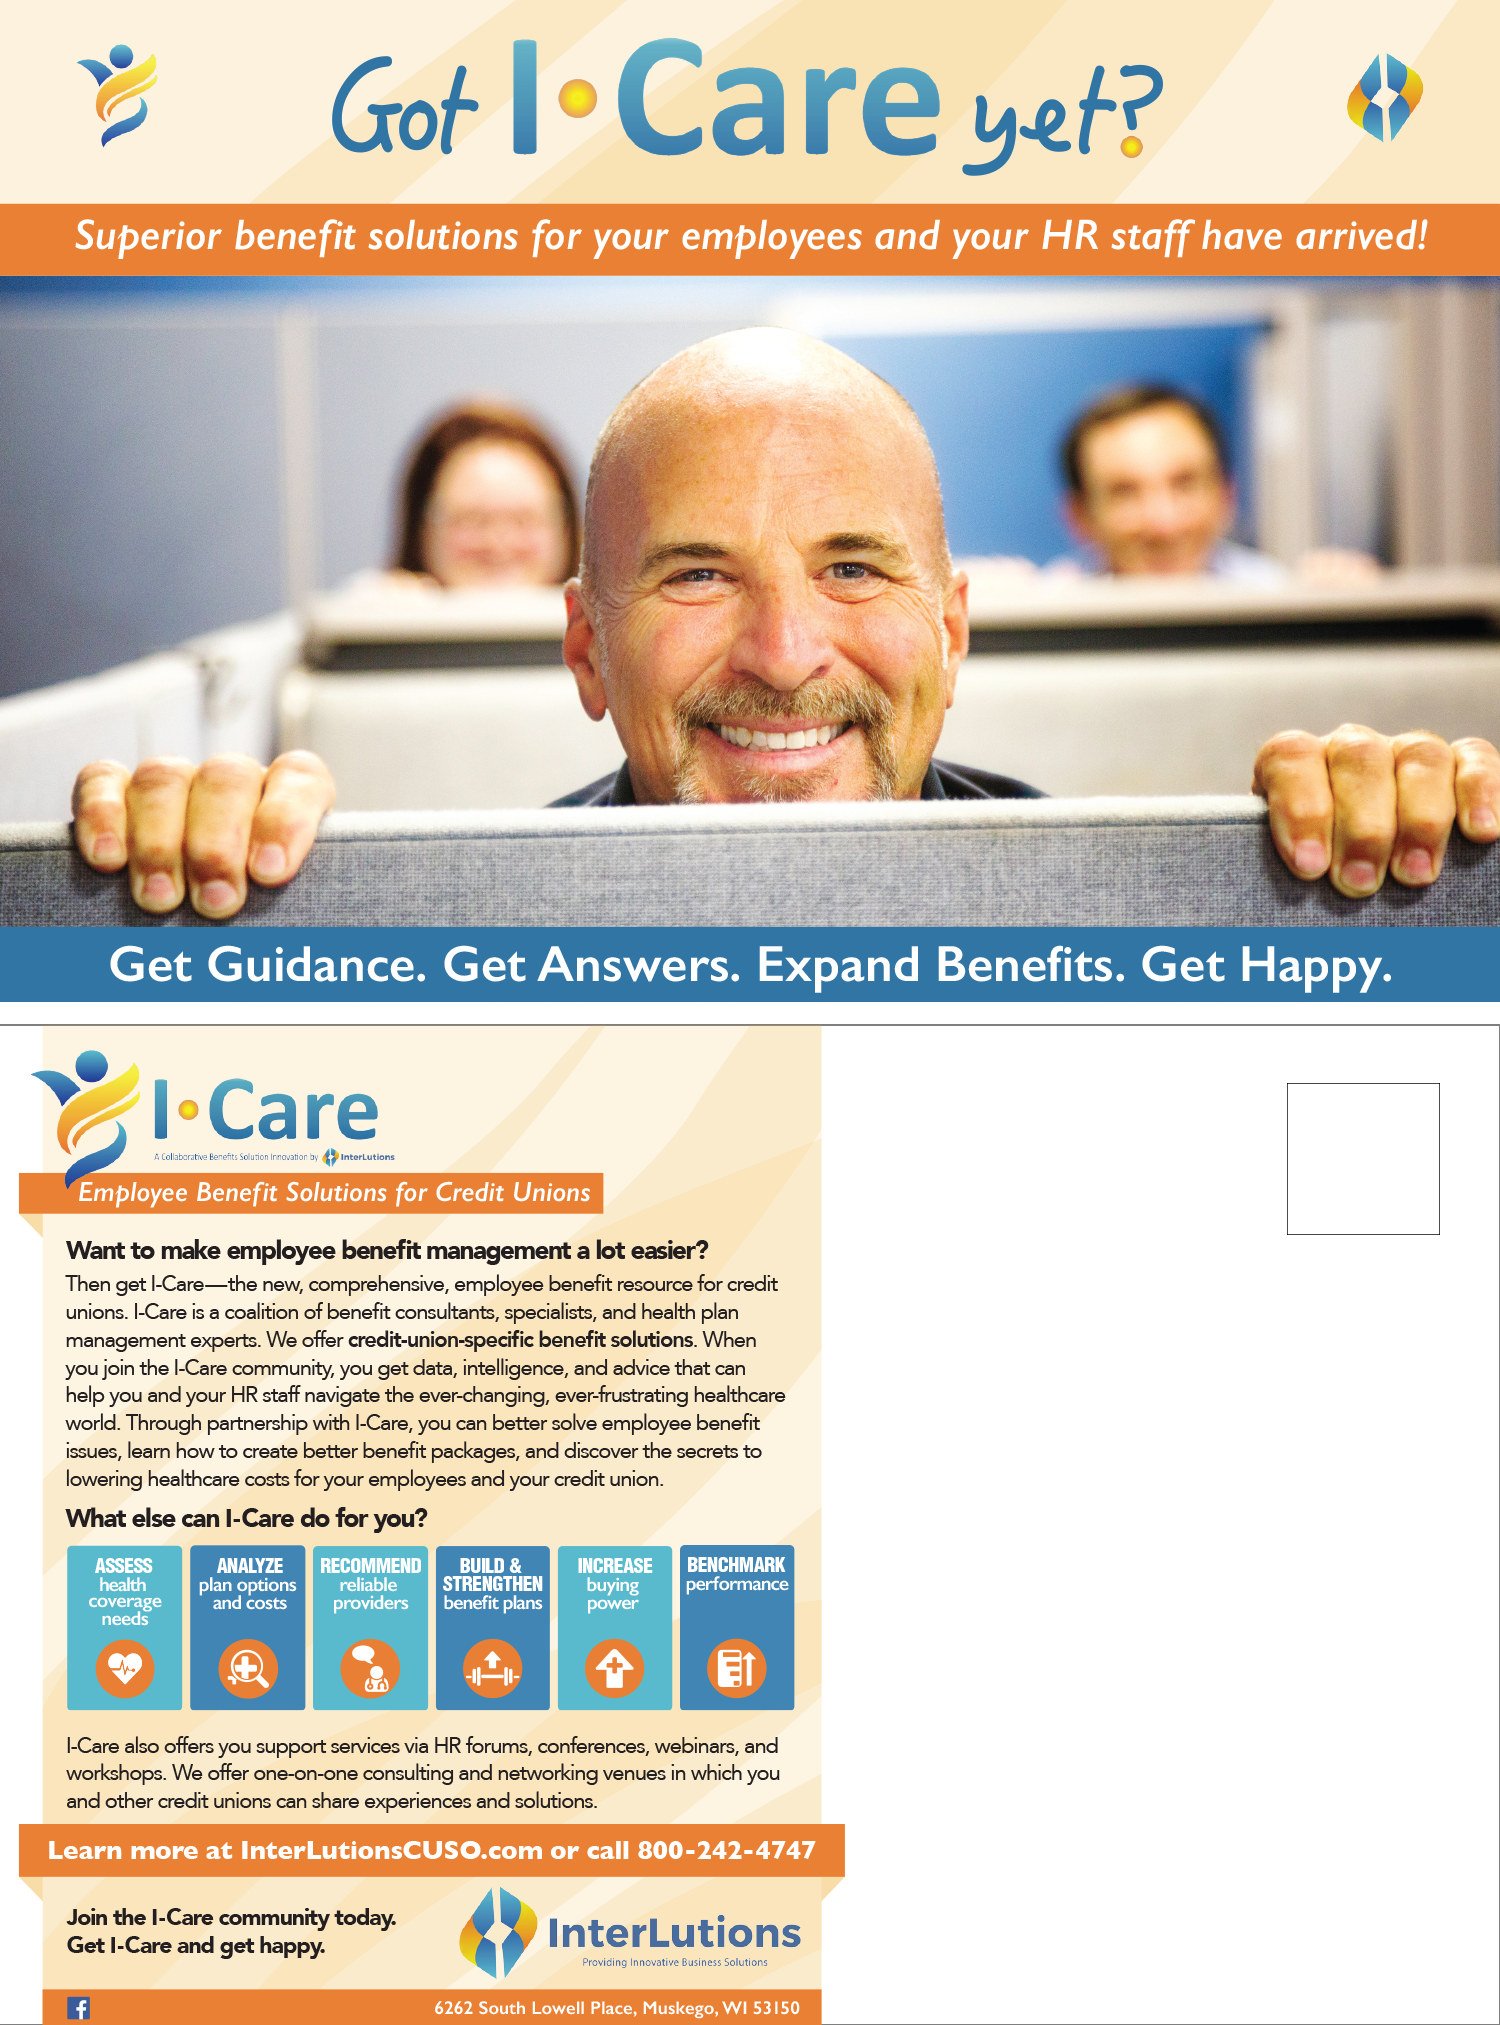 I-Care_Postcards_GotI_Care_051517.png